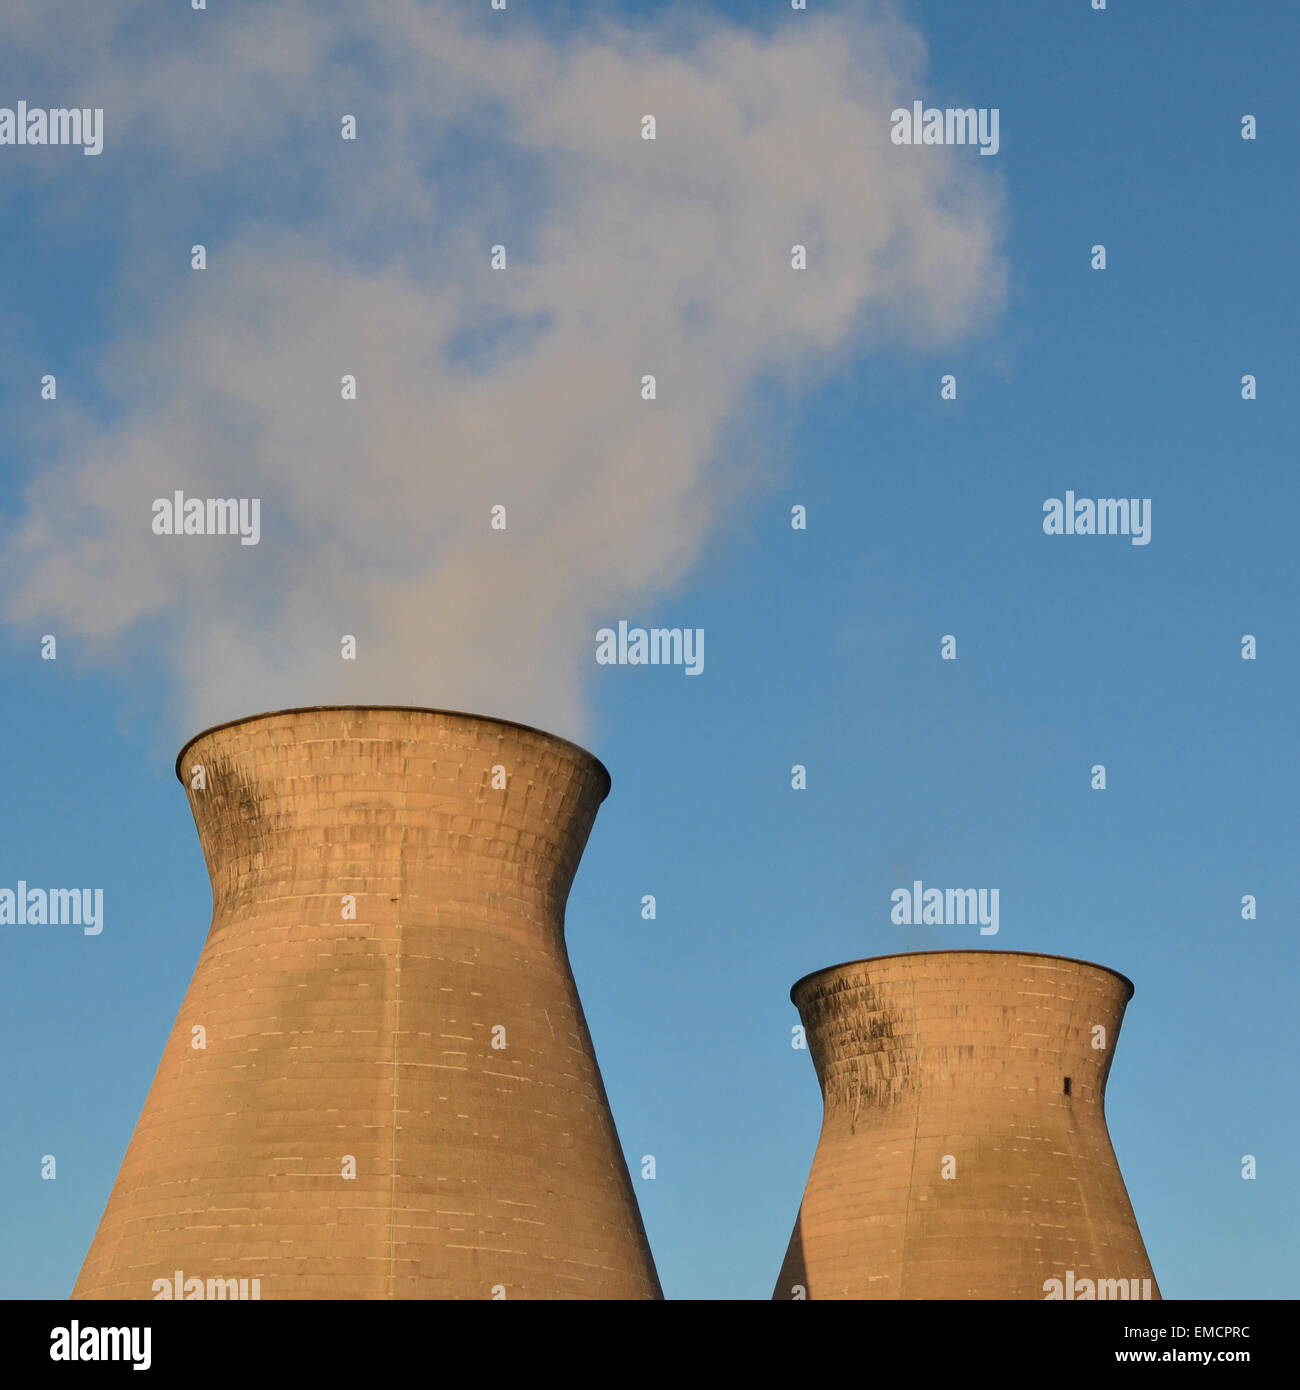 Two hyperboloid cooling towers in late evening sunlight - Stock Image